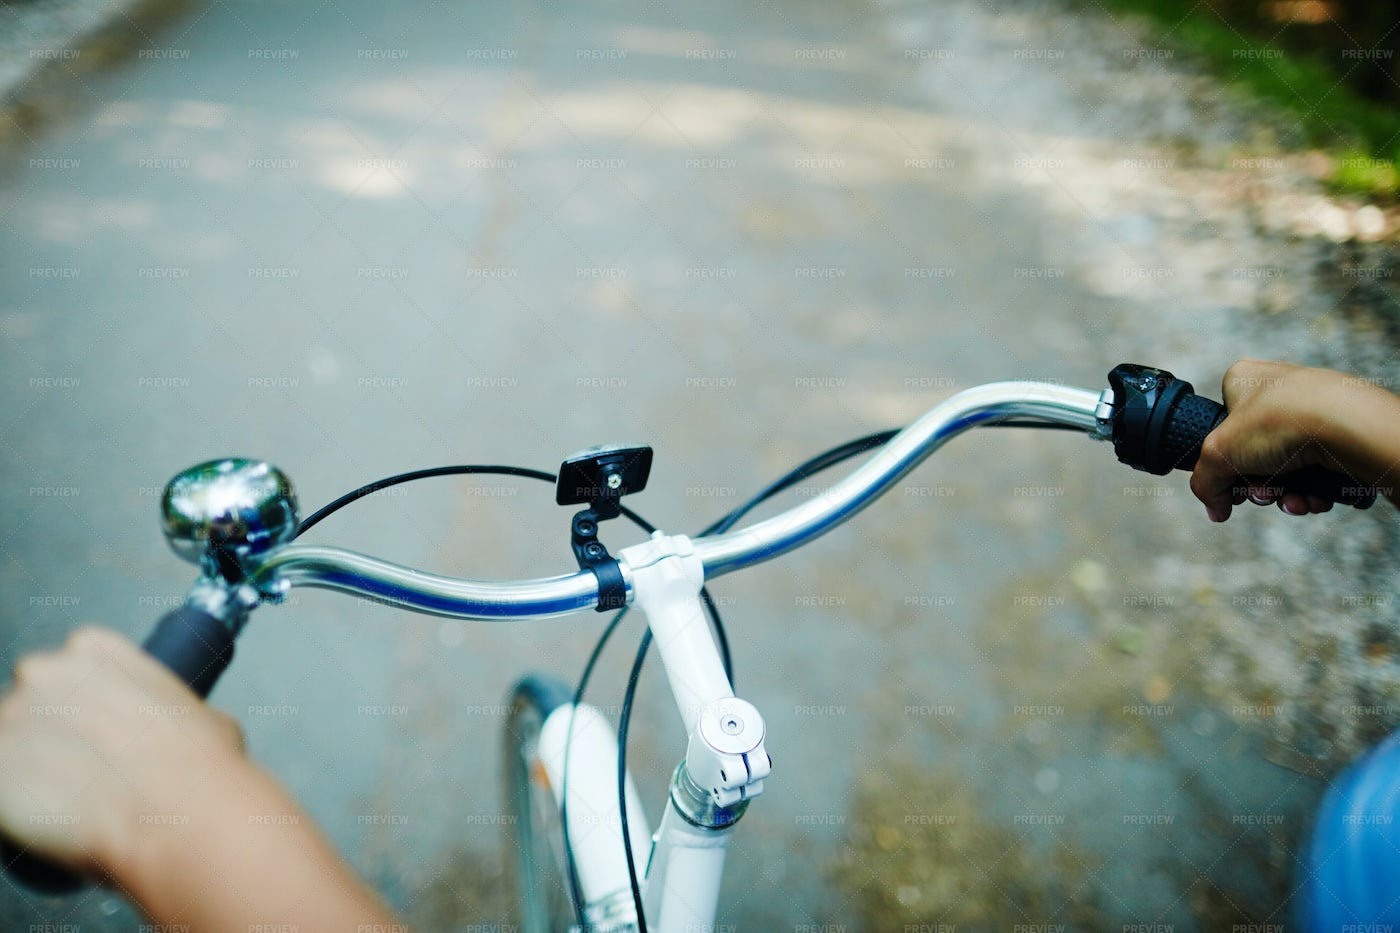 Ride On Cycle: Stock Photos